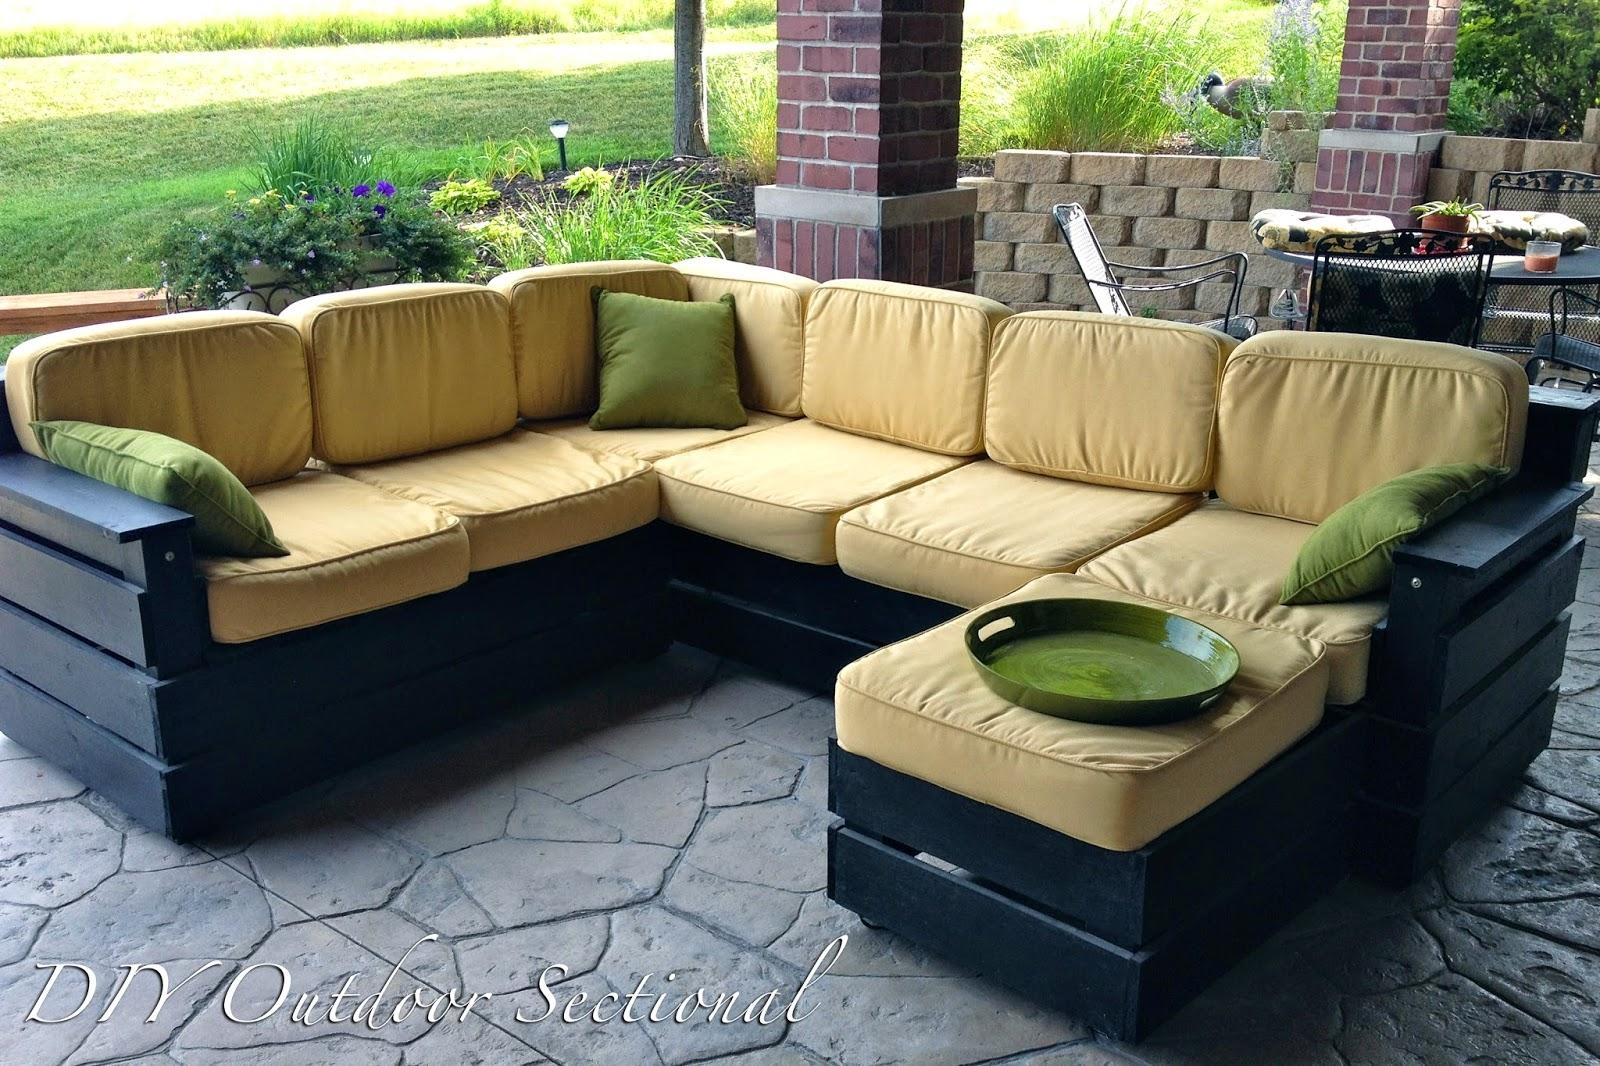 Patio, Diy Patio Sectional | Pythonet Home Furniture In Cheap Patio Sofas (Image 12 of 22)